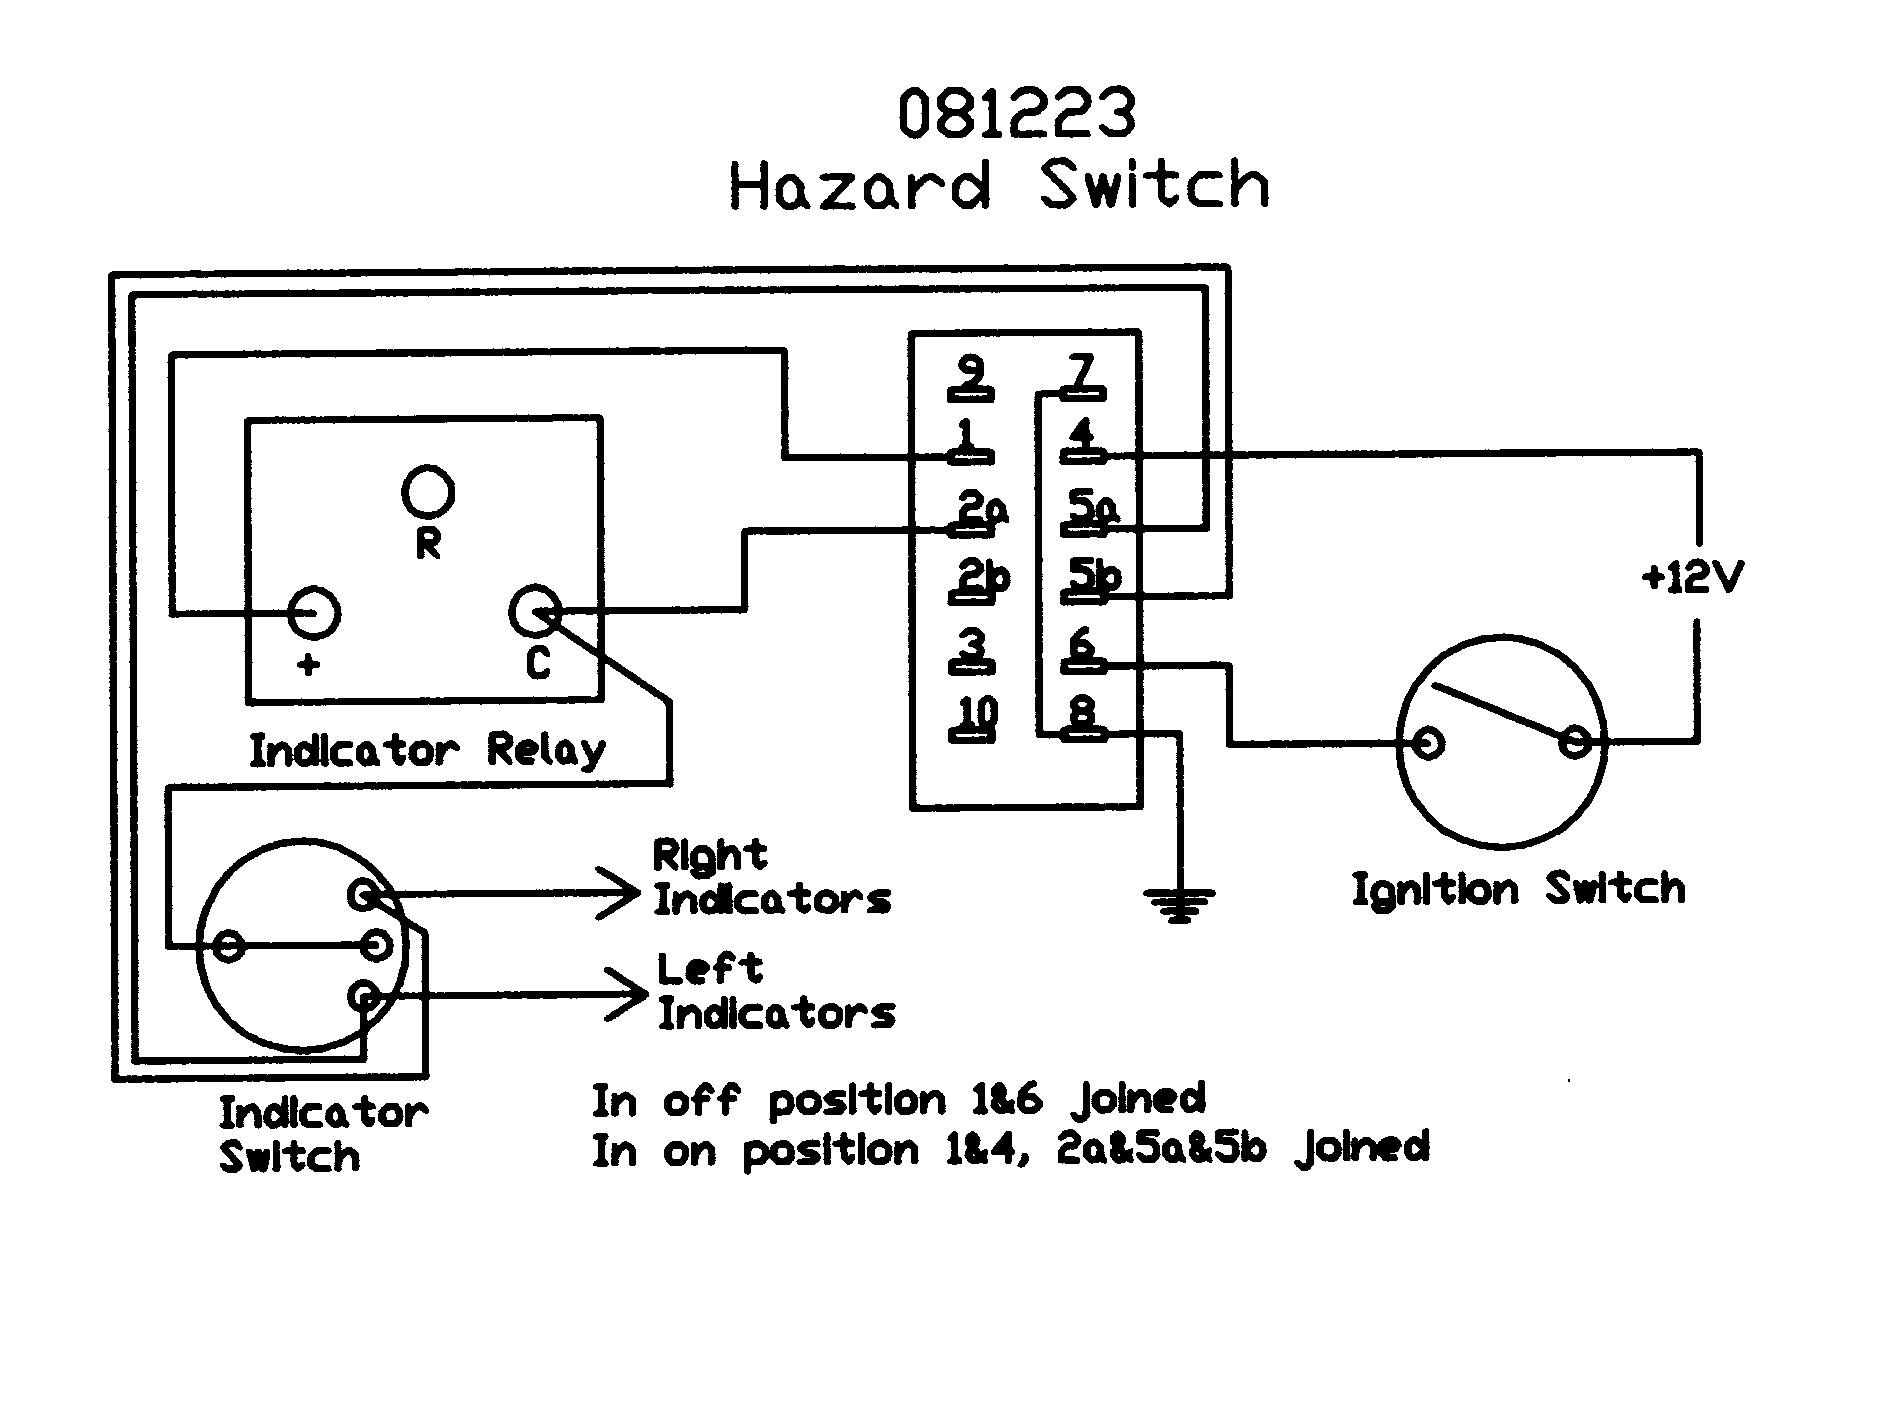 Light Switch Drawing At Free For Personal Use A 500 Fog Wiring Diagram 1904x1424 Rocker Hazard